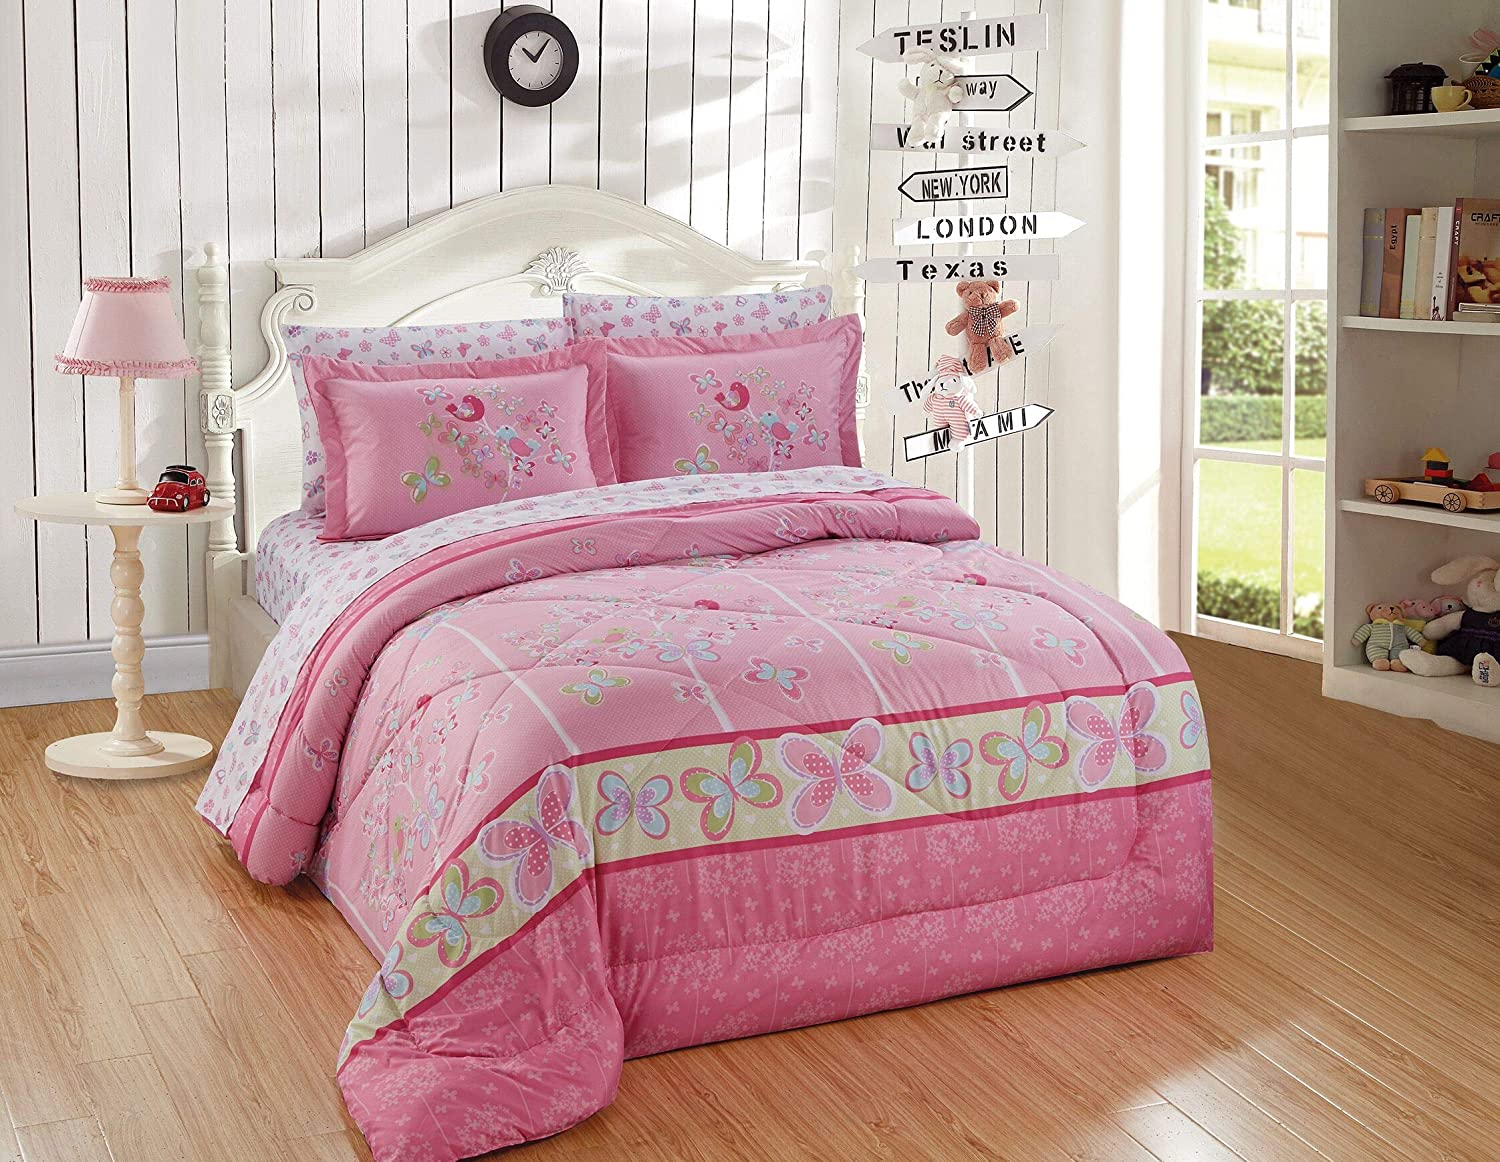 Arlington Mall Home Collection Full Size Comforter New mail order Sheet Bi Set And Butterflies